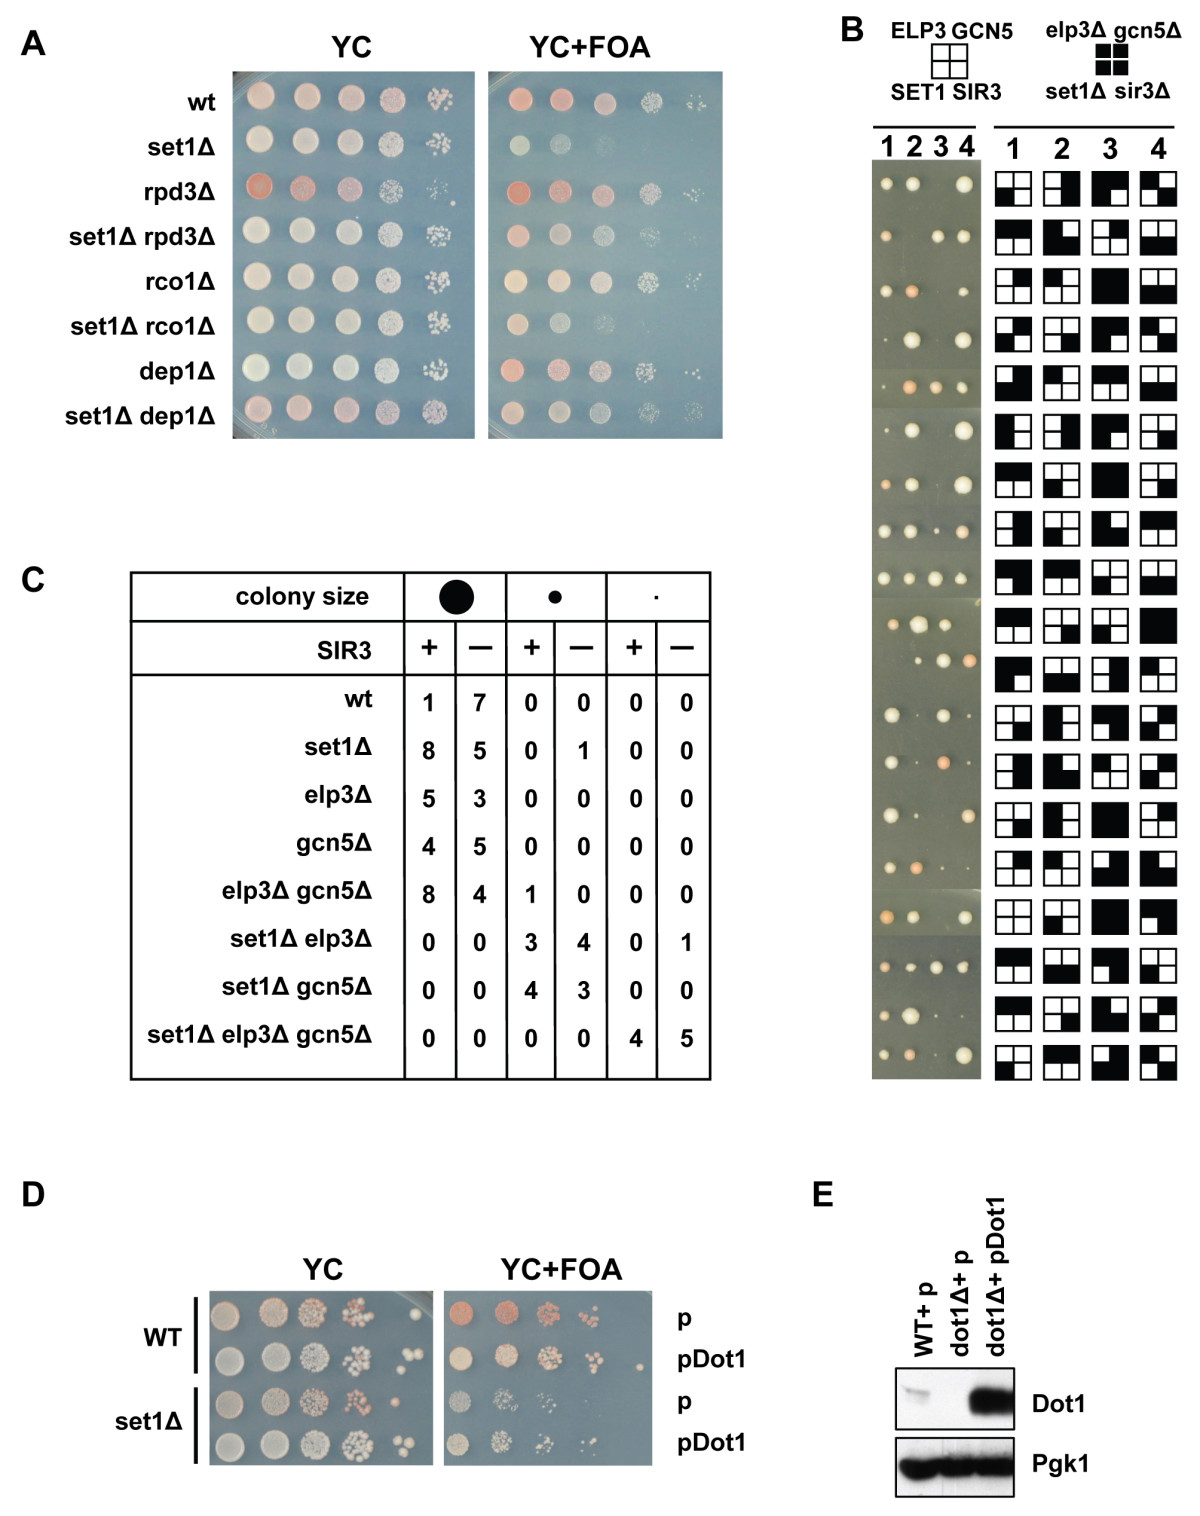 https://static-content.springer.com/image/art%3A10.1186%2F1471-2199-10-76/MediaObjects/12867_2009_Article_444_Fig4_HTML.jpg